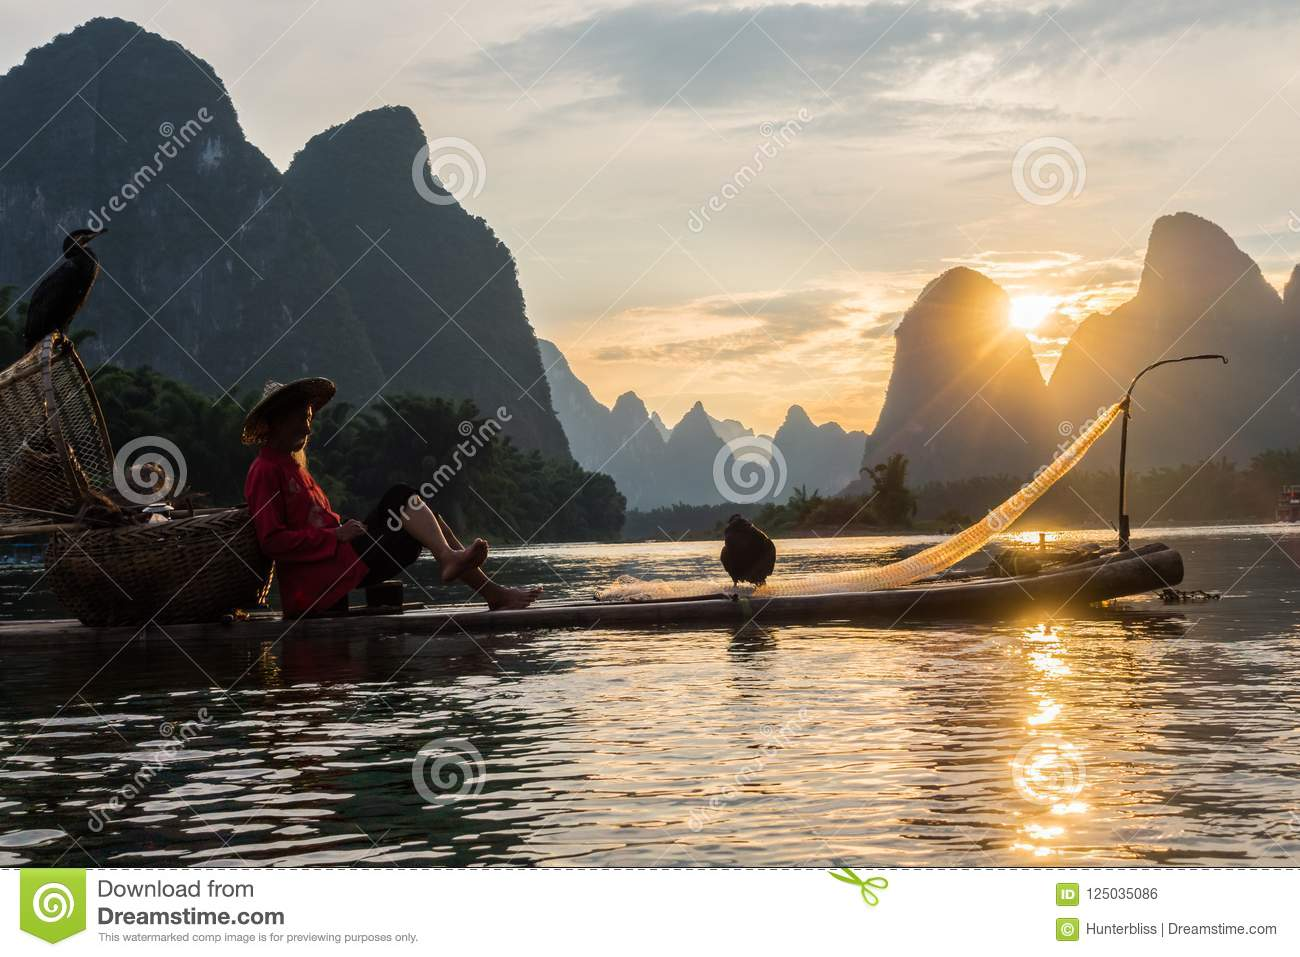 Yangshuo, China Sunset Landscape on Calm River with Villager on